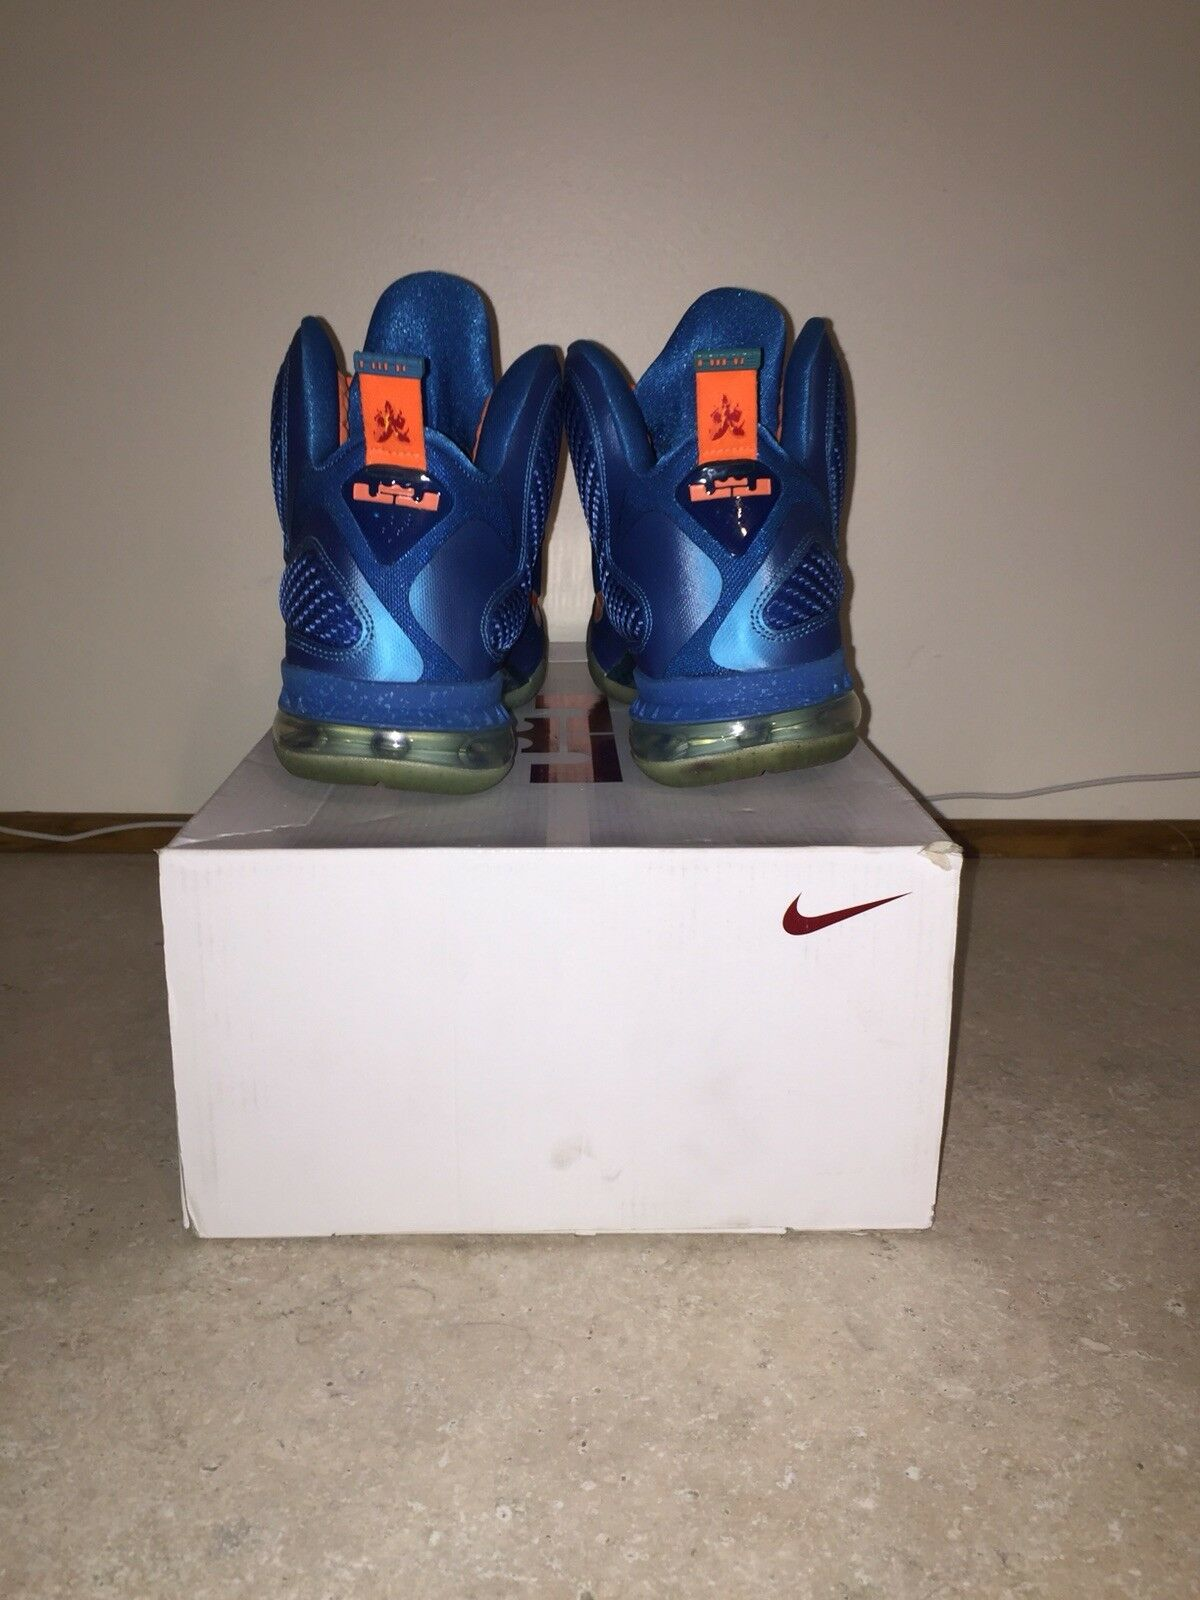 competitive price 1f580 61190 ... NIKE LEBRON 9 IX CHINA DRAGON NEPTUNE BLUE ORANGE 469764-800 469764-800  469764 ...